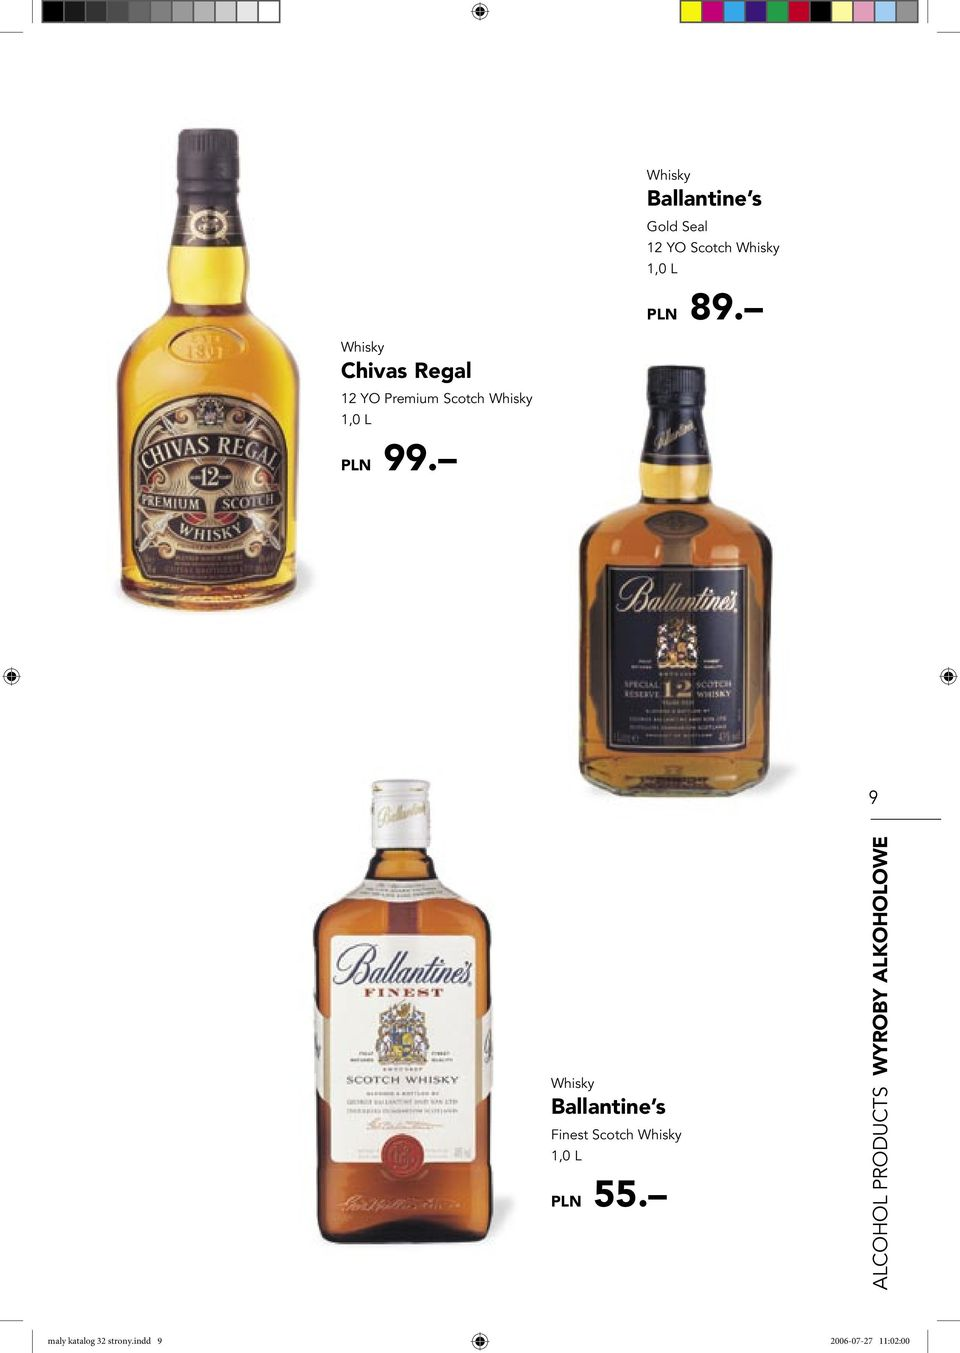 9 Whisky Ballantine s Finest Scotch Whisky 1,0 L PLN 55.